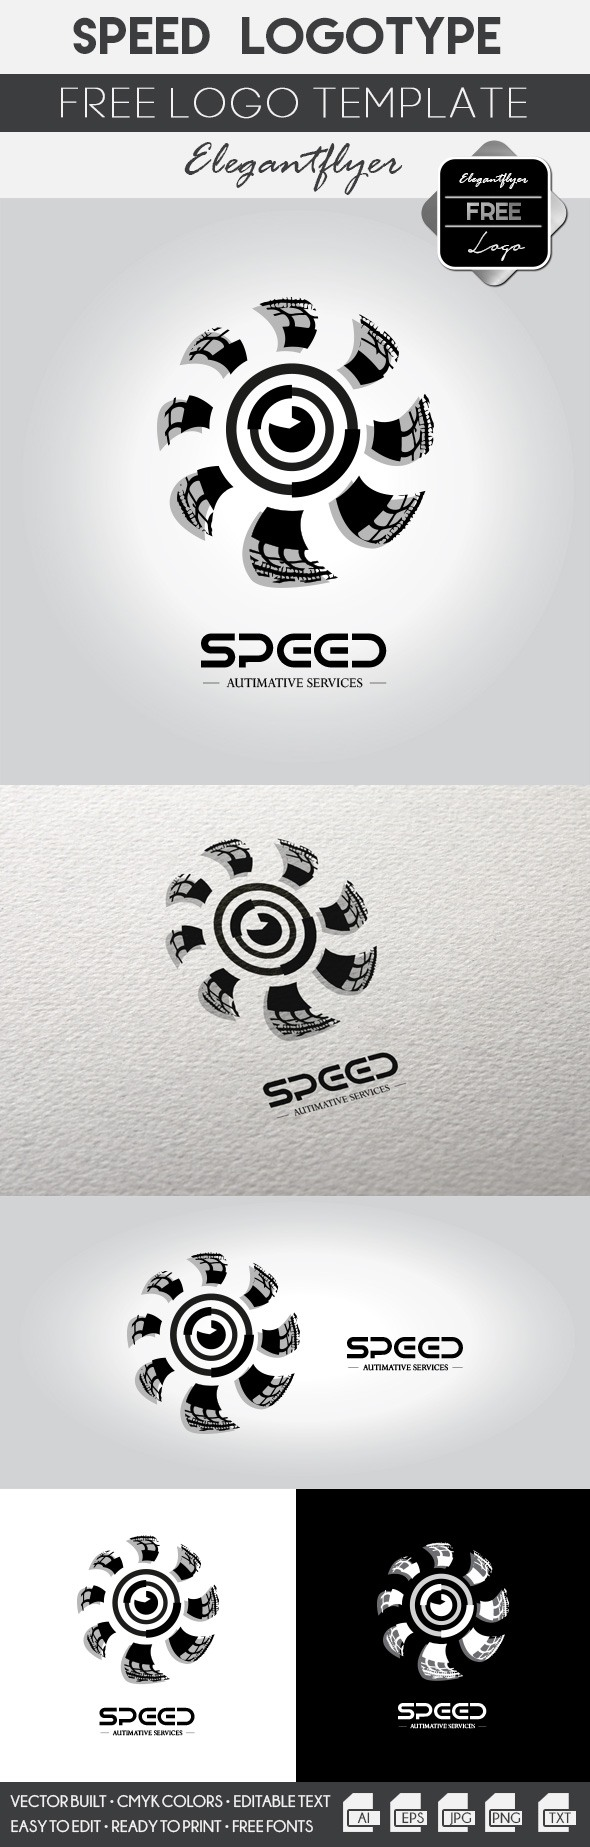 Speed logo – Free Logo Template